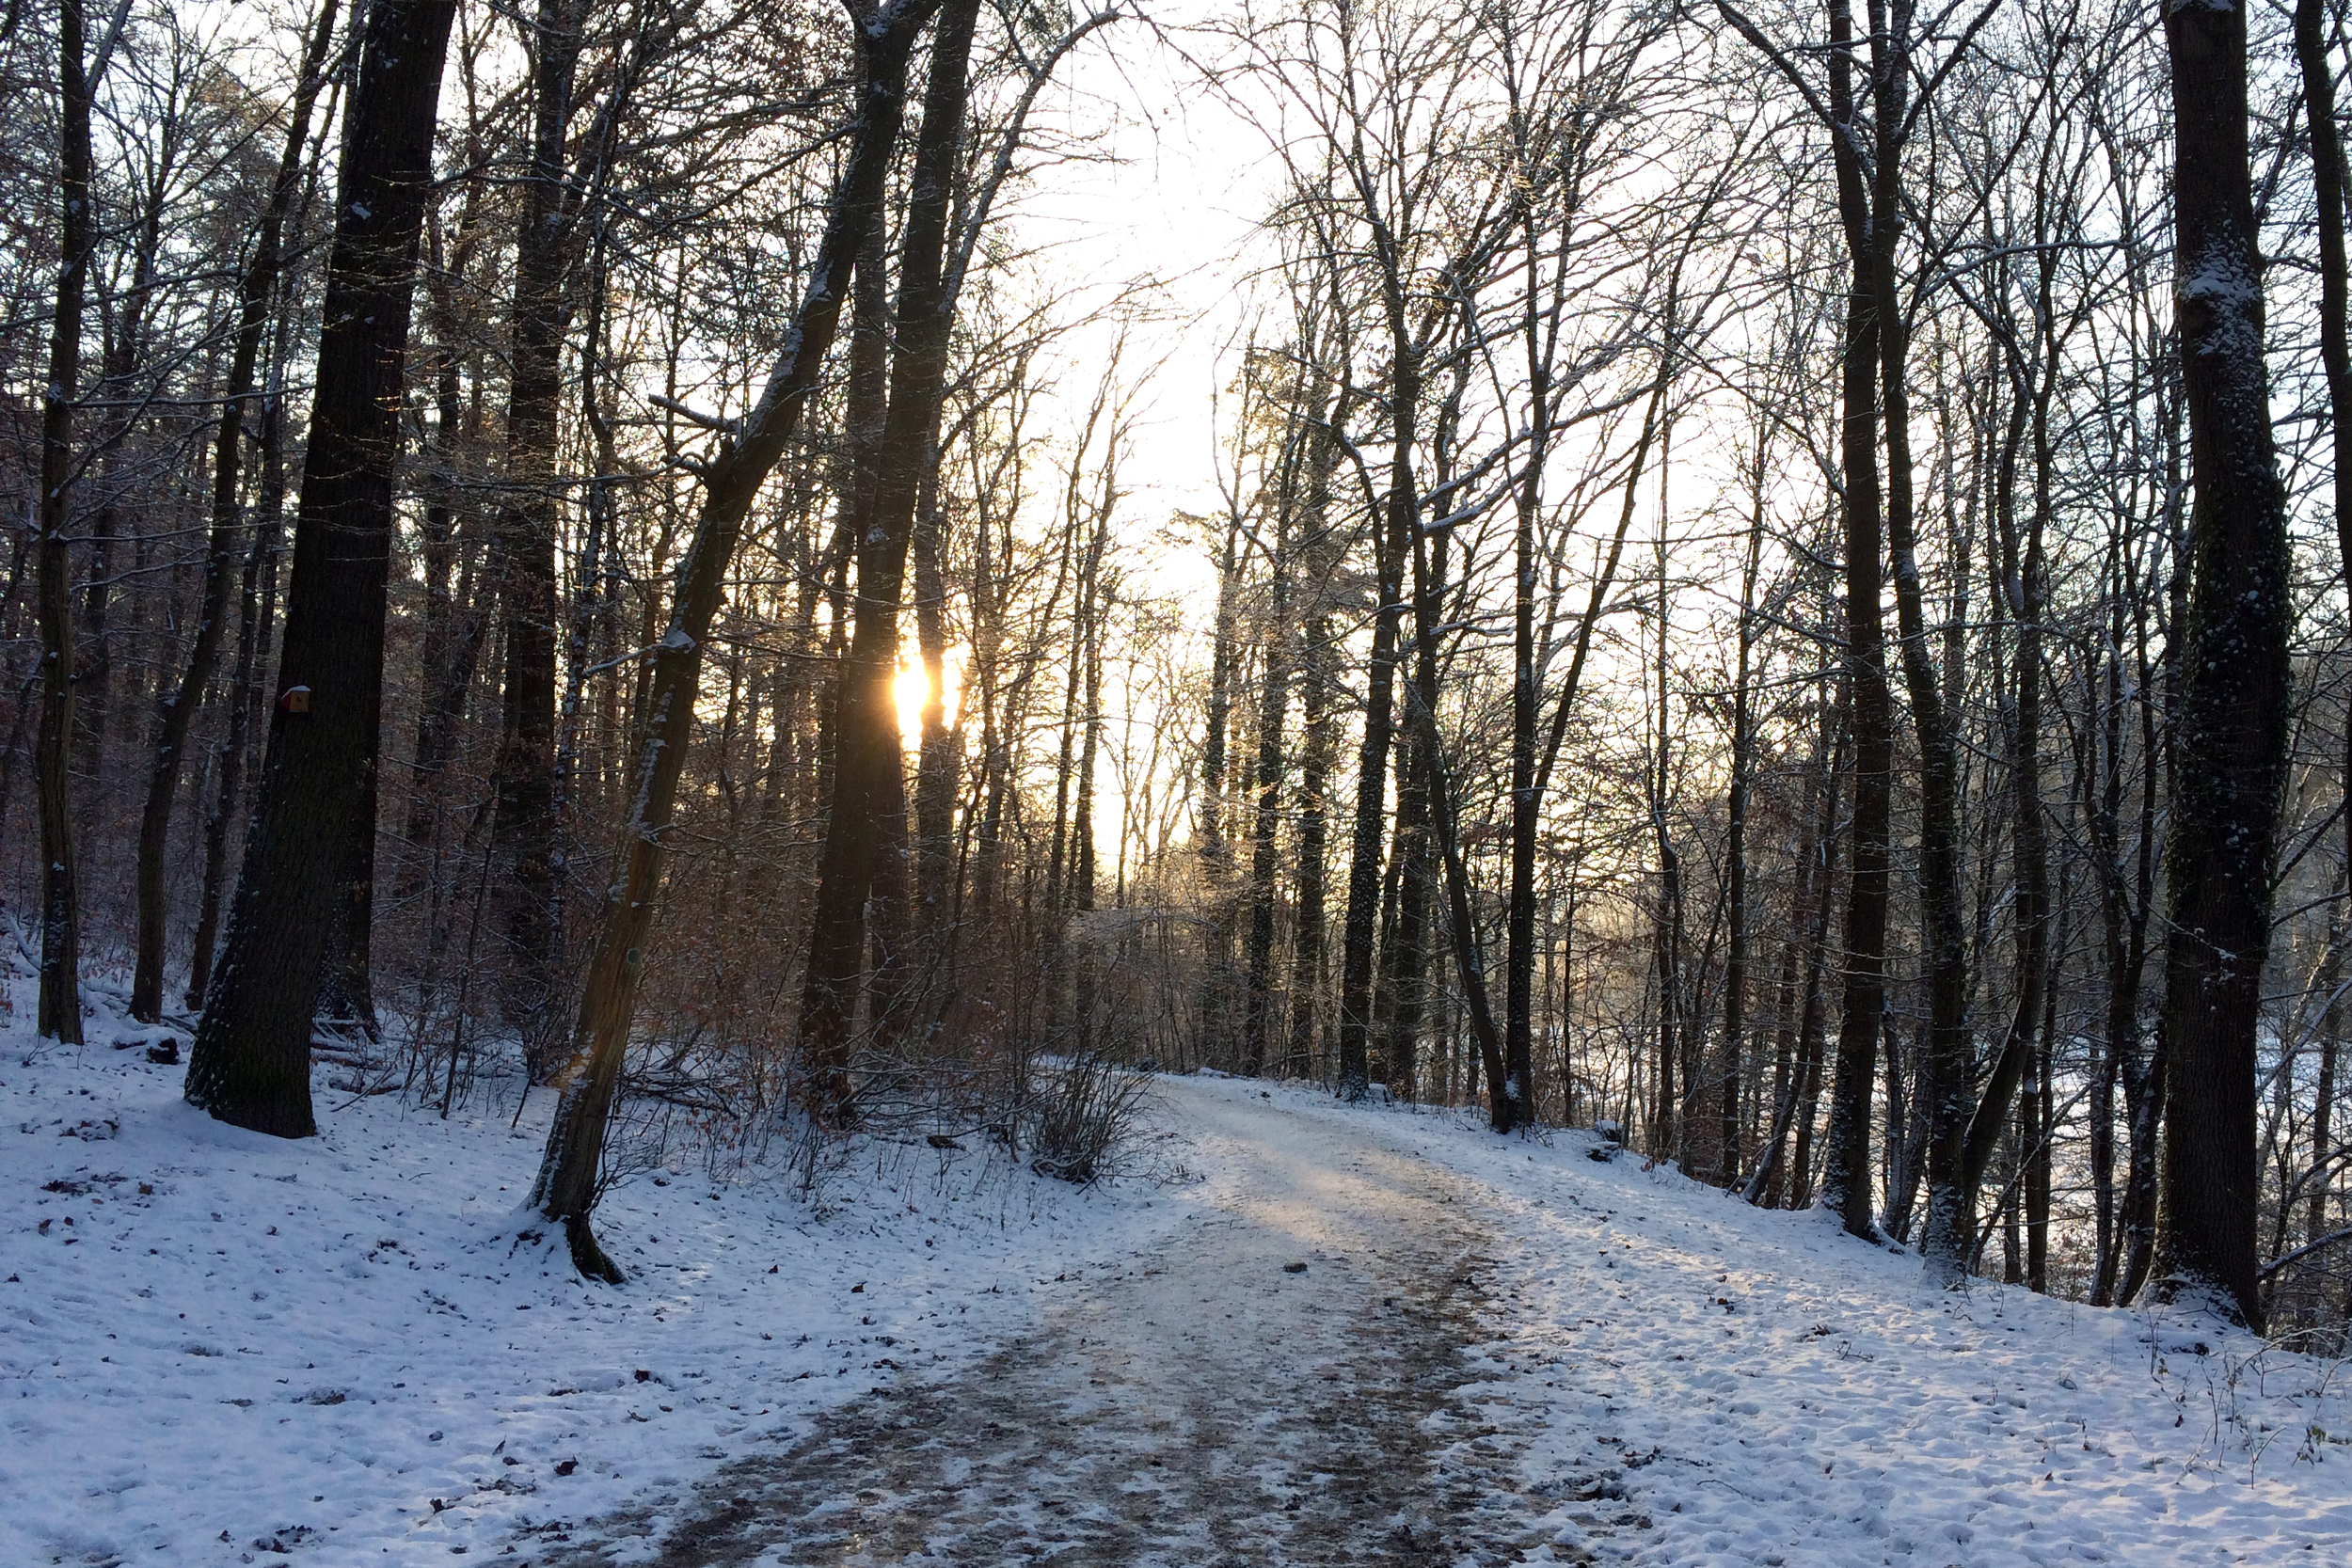 These winter pictures were taken the week of Christmas — right after a big snowfall.